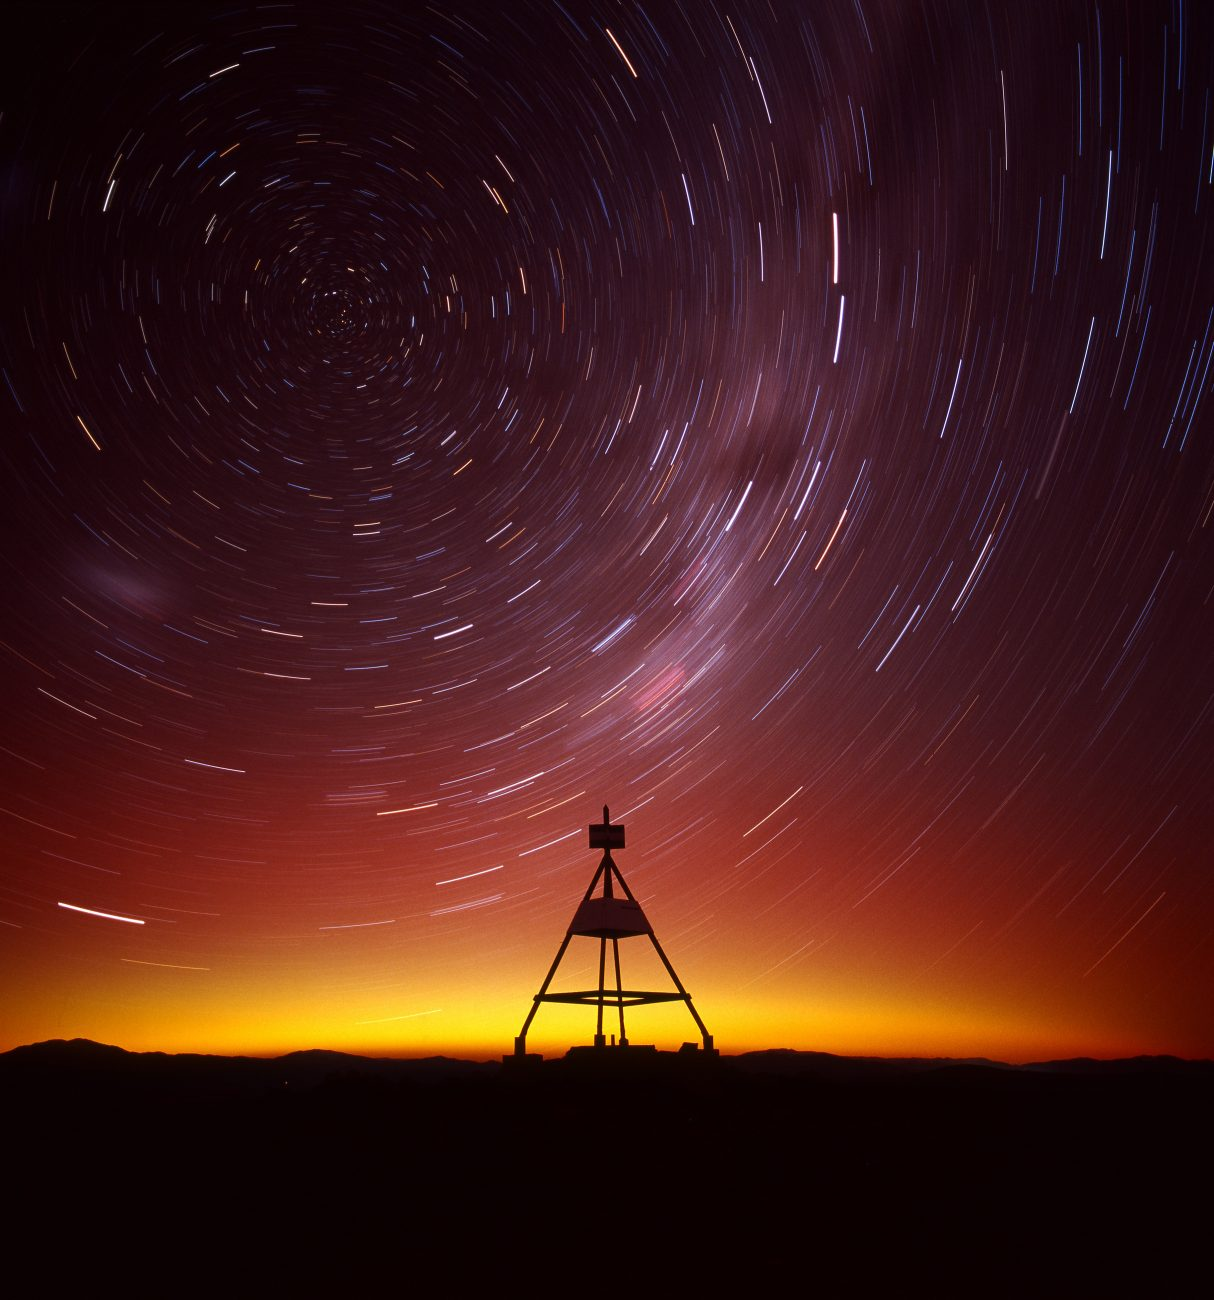 The stellar South Pole in a time-lapse image from Mt John, Canterbury, shows stars tracing arcs across the night sky. A favourable climate and clear views of the Milky Way during winter make Mt John an excellent location for stargazing.